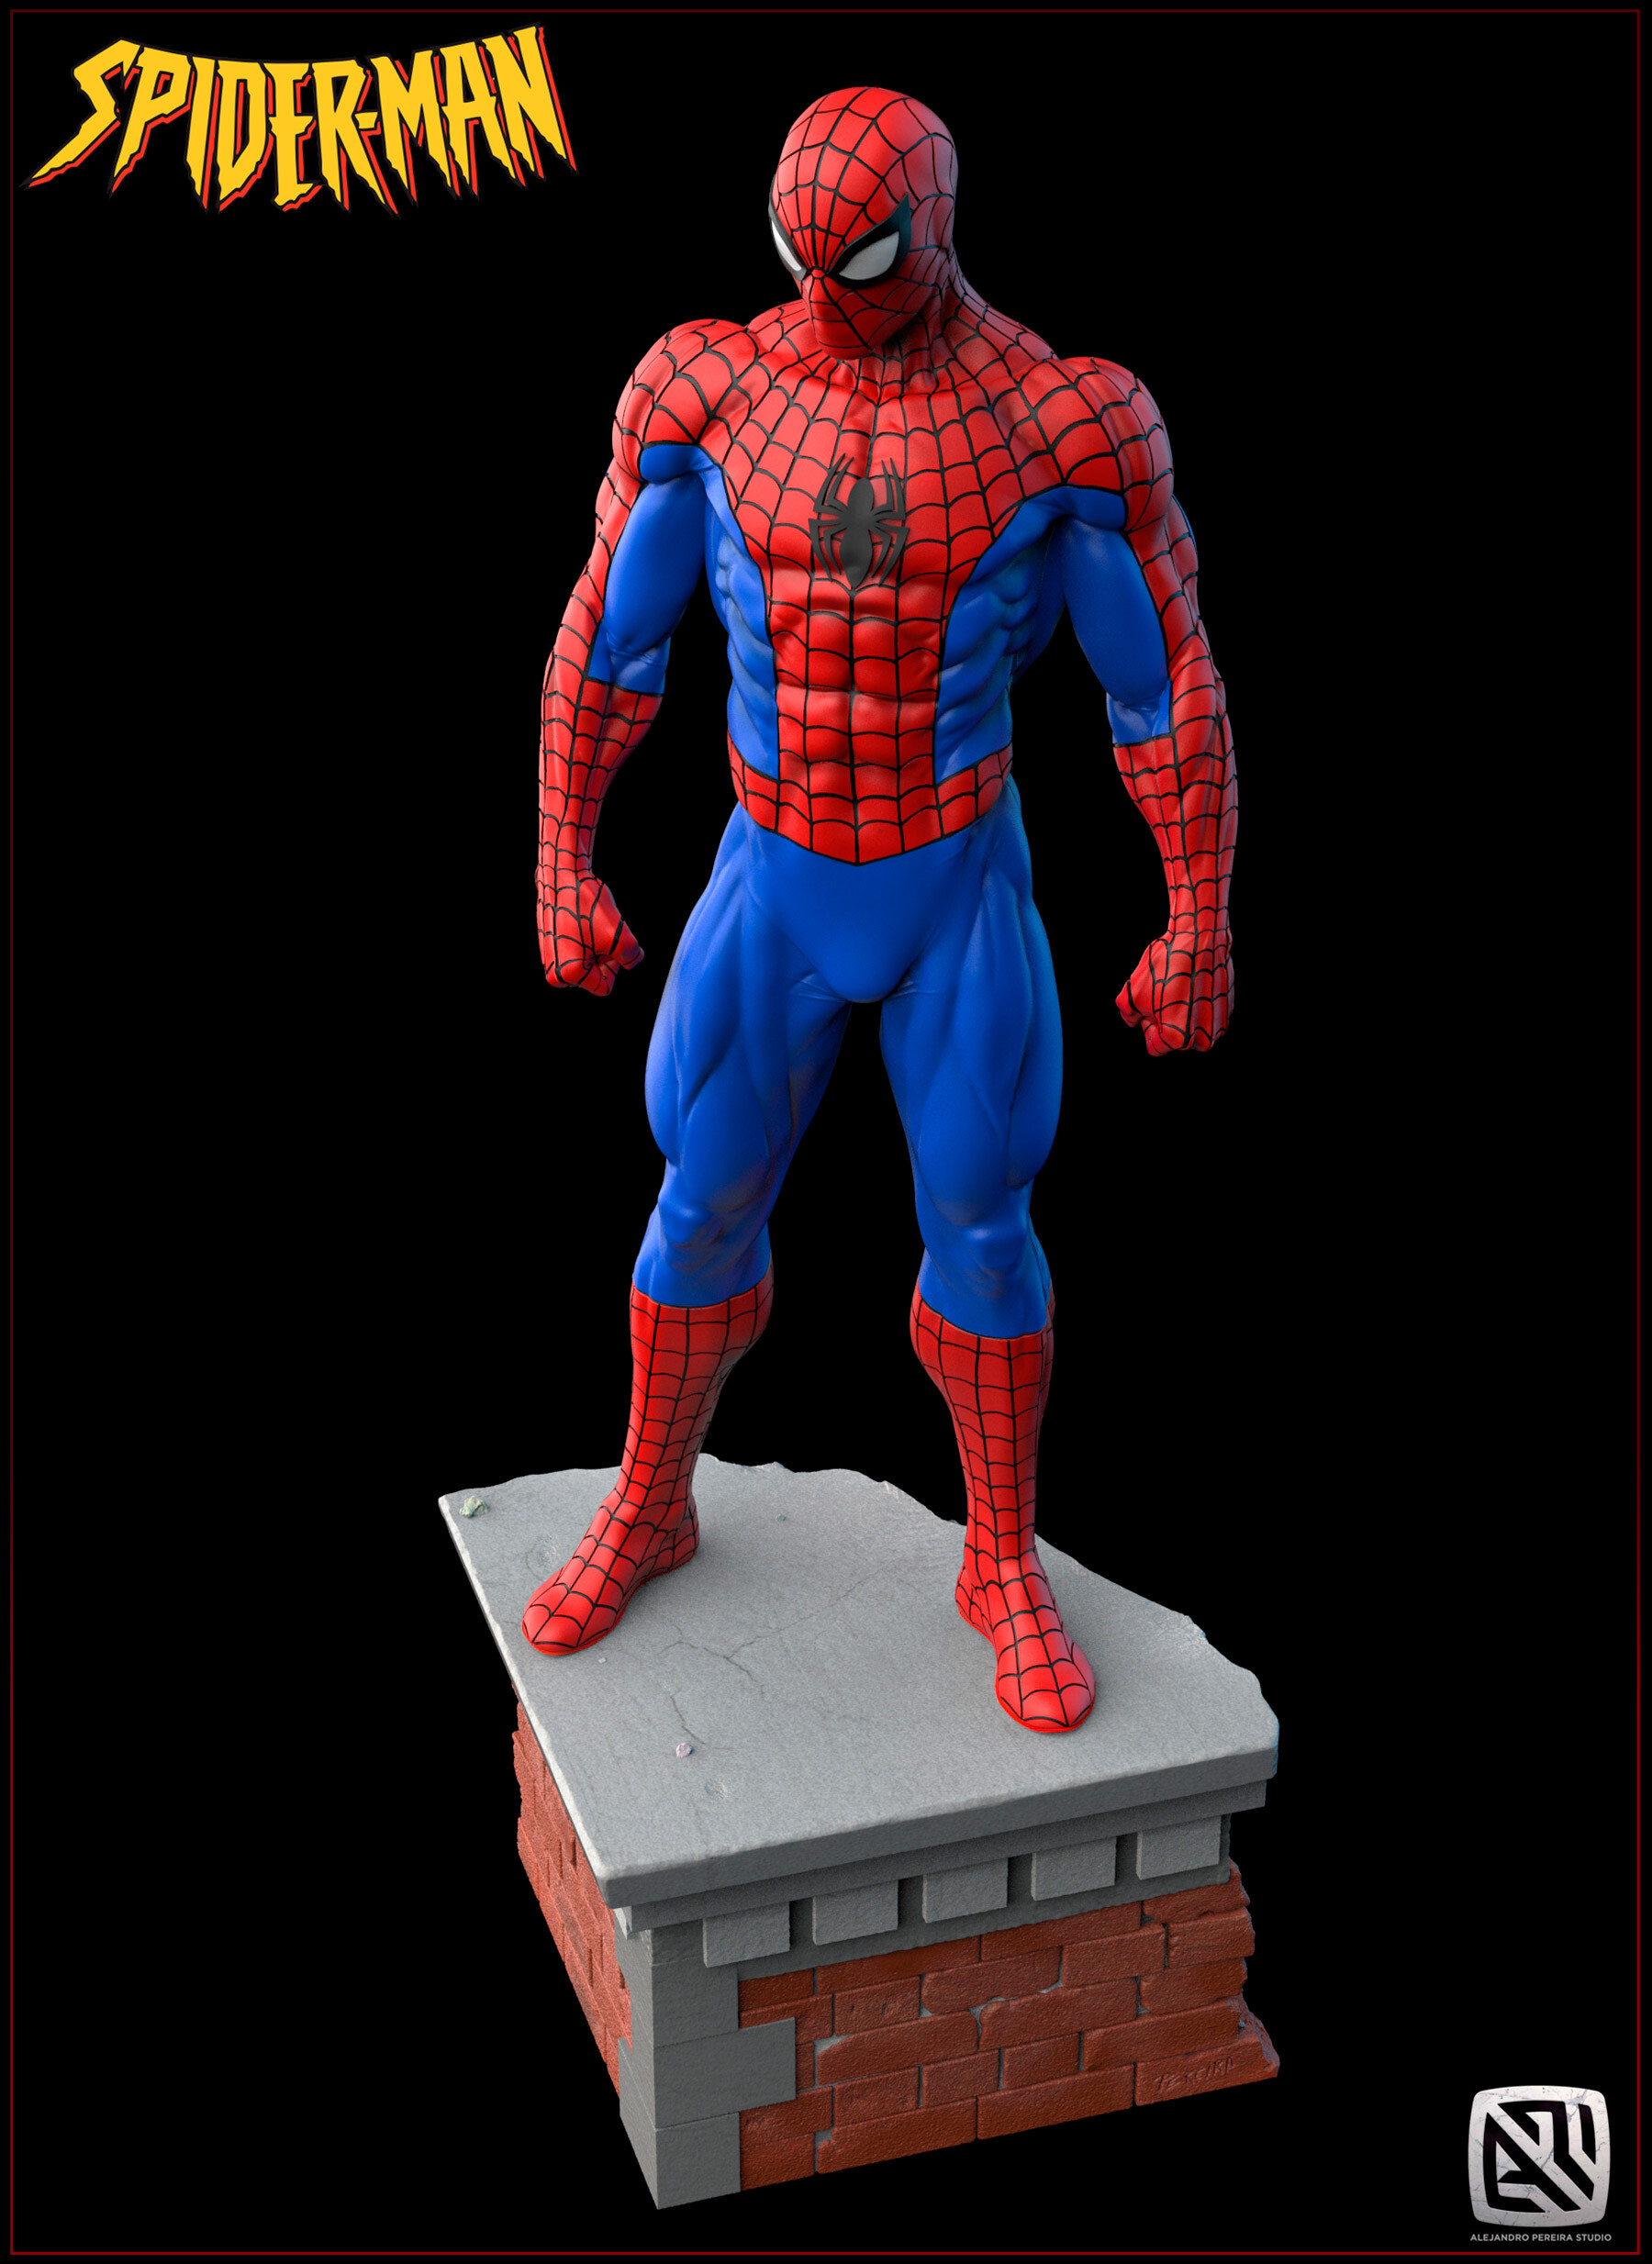 Alejandro pereira spidey render color 07